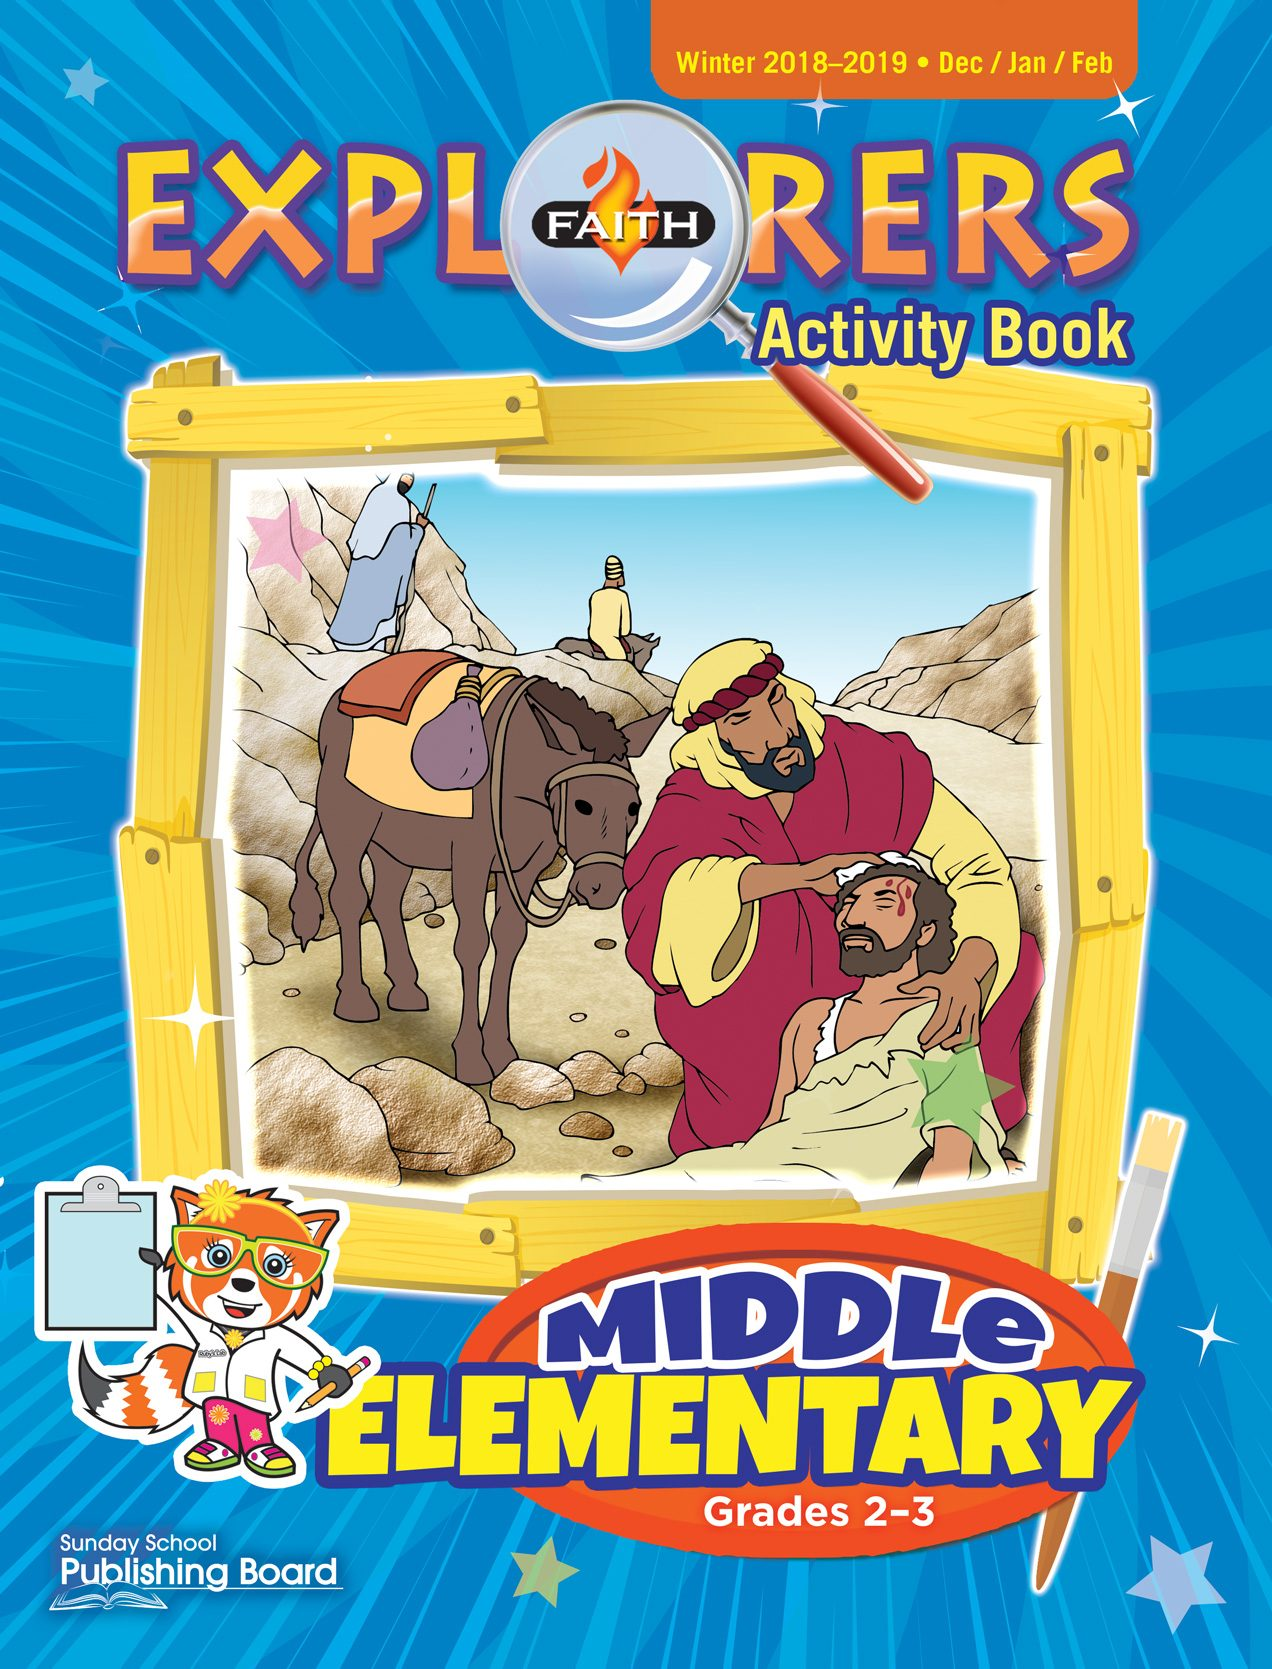 Faith Explorers Activity Book, Middle Elementary for Grades 2-3 (Winter 2018)-Digital Edition